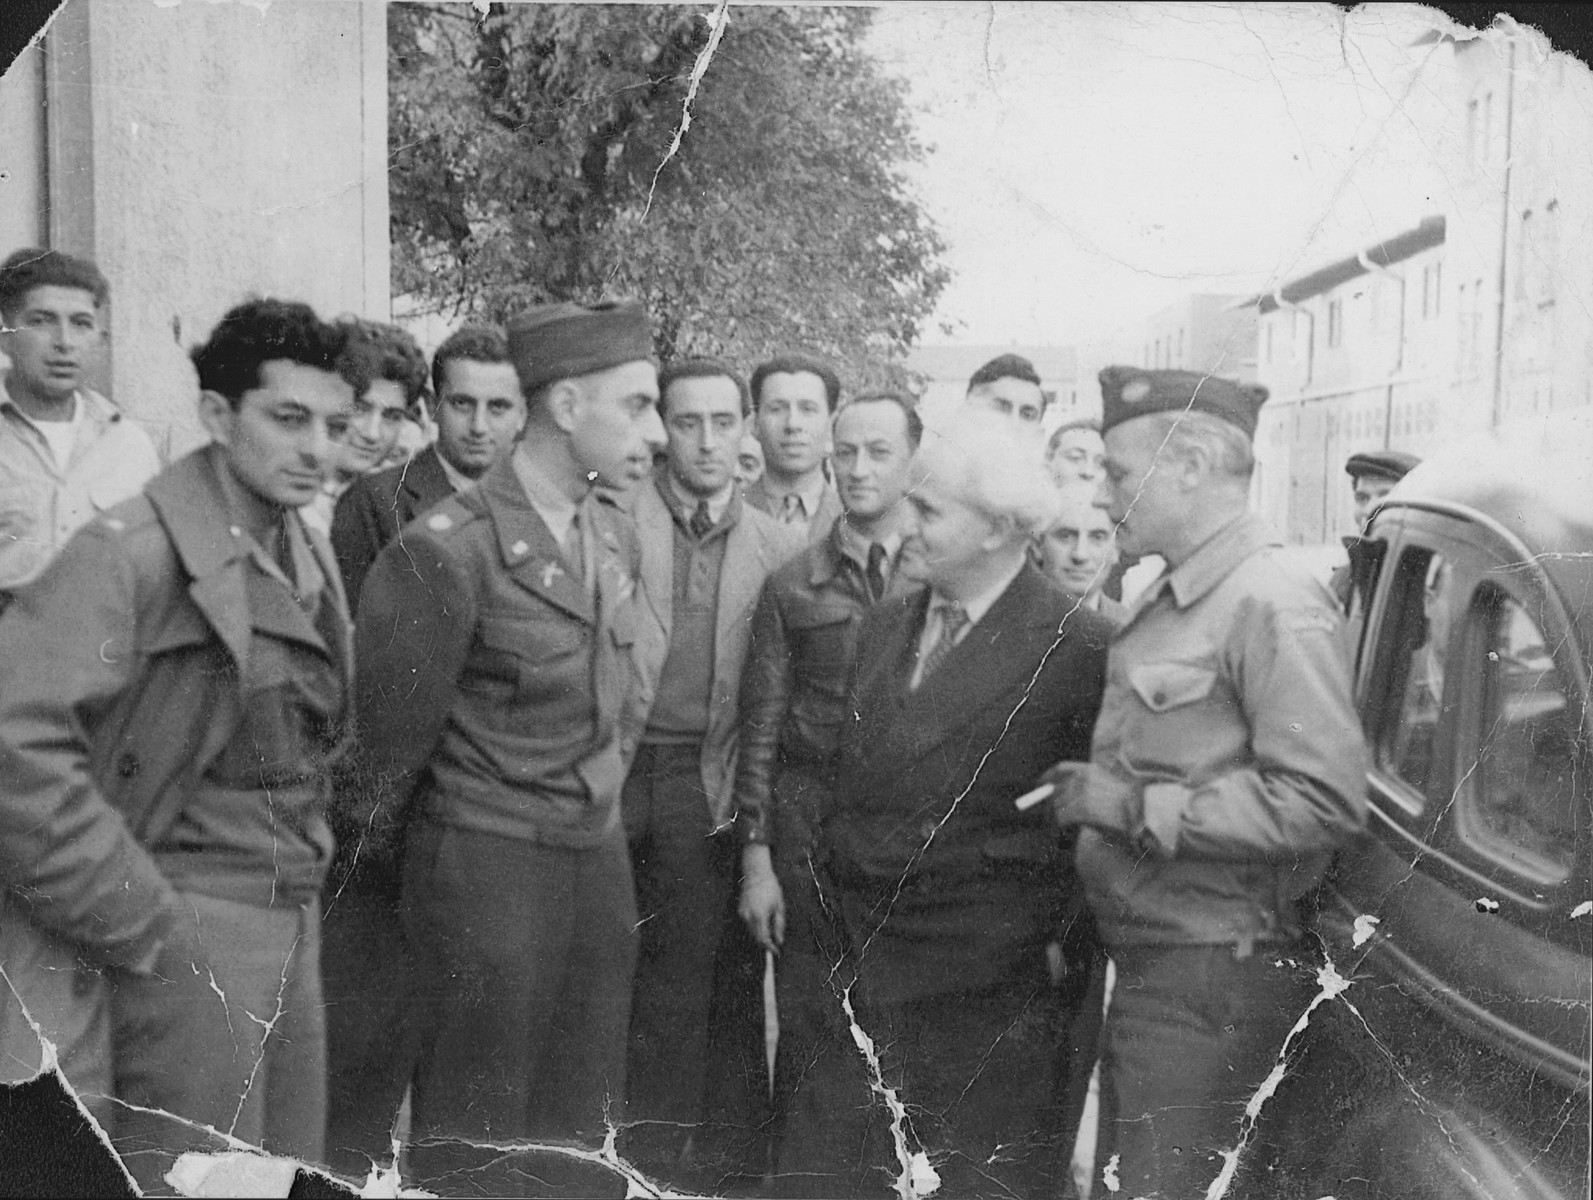 Major Irving Heymont converses with David Ben-Gurion during his visit to the Landsberg displaced persons camp.    Also pictured is U.S. Army chaplain, Rabbi Abraham Klausner (on the left ) and Abraham Glassgold, UNRRA camp director (at the far right).